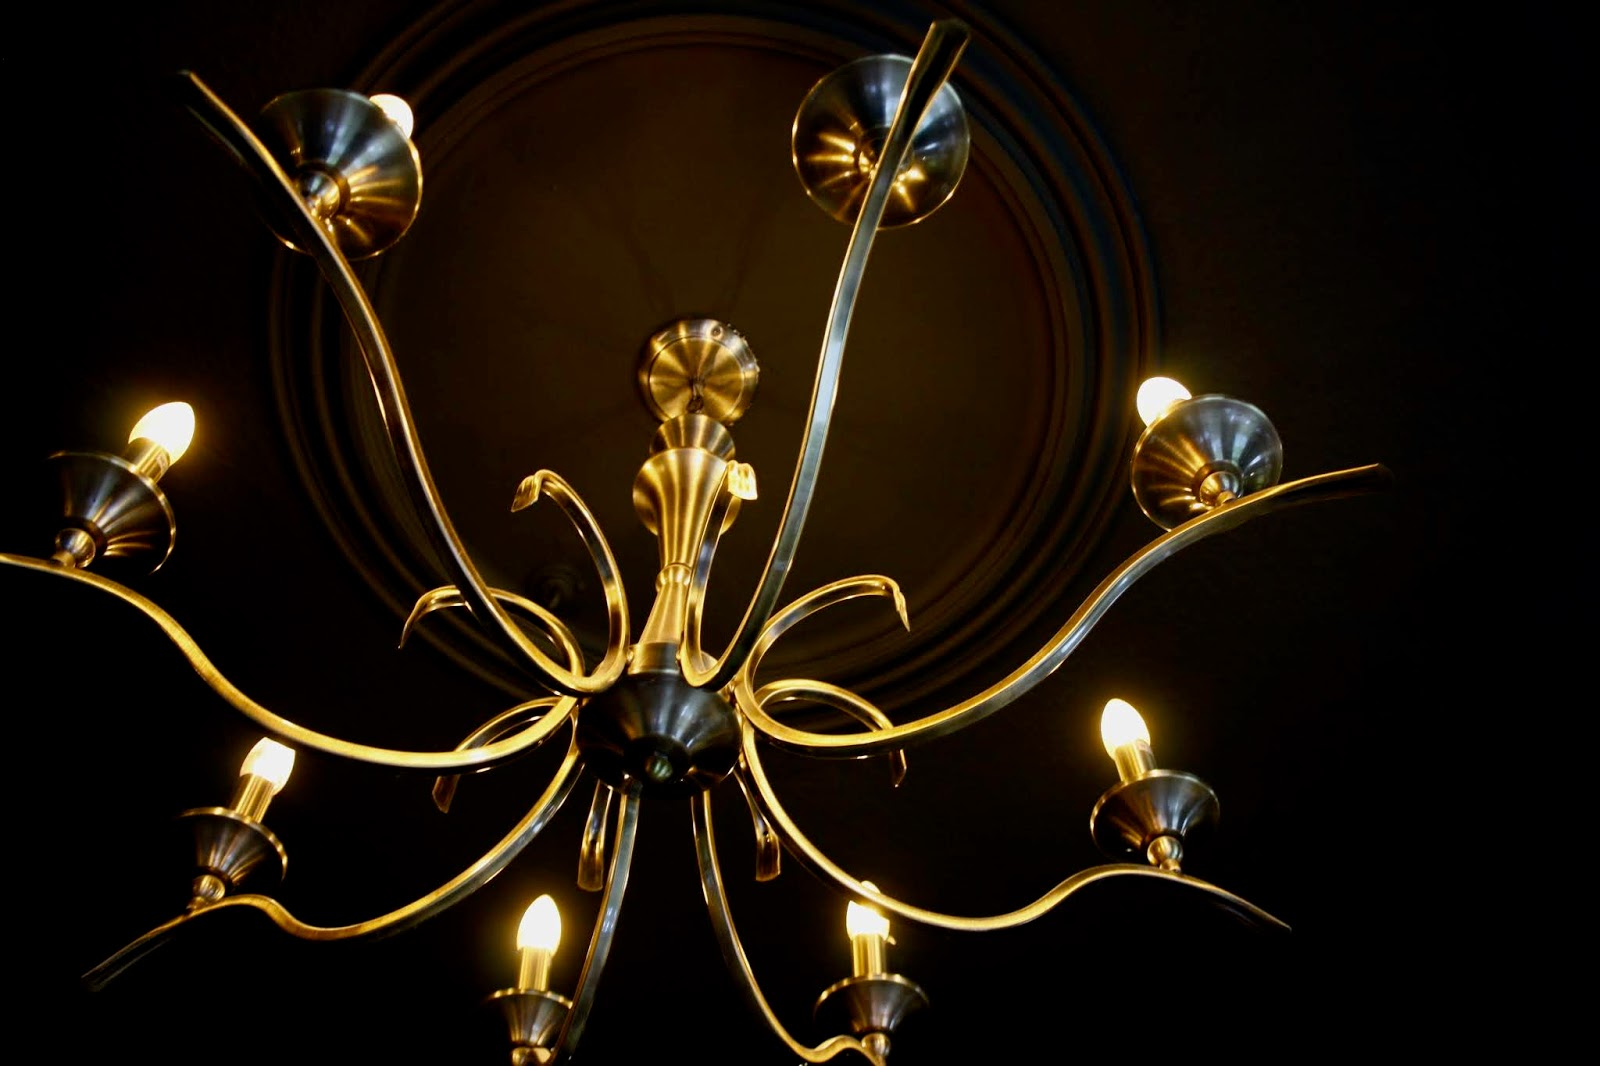 Gold chandelier at King Richard III chop house, Leicester